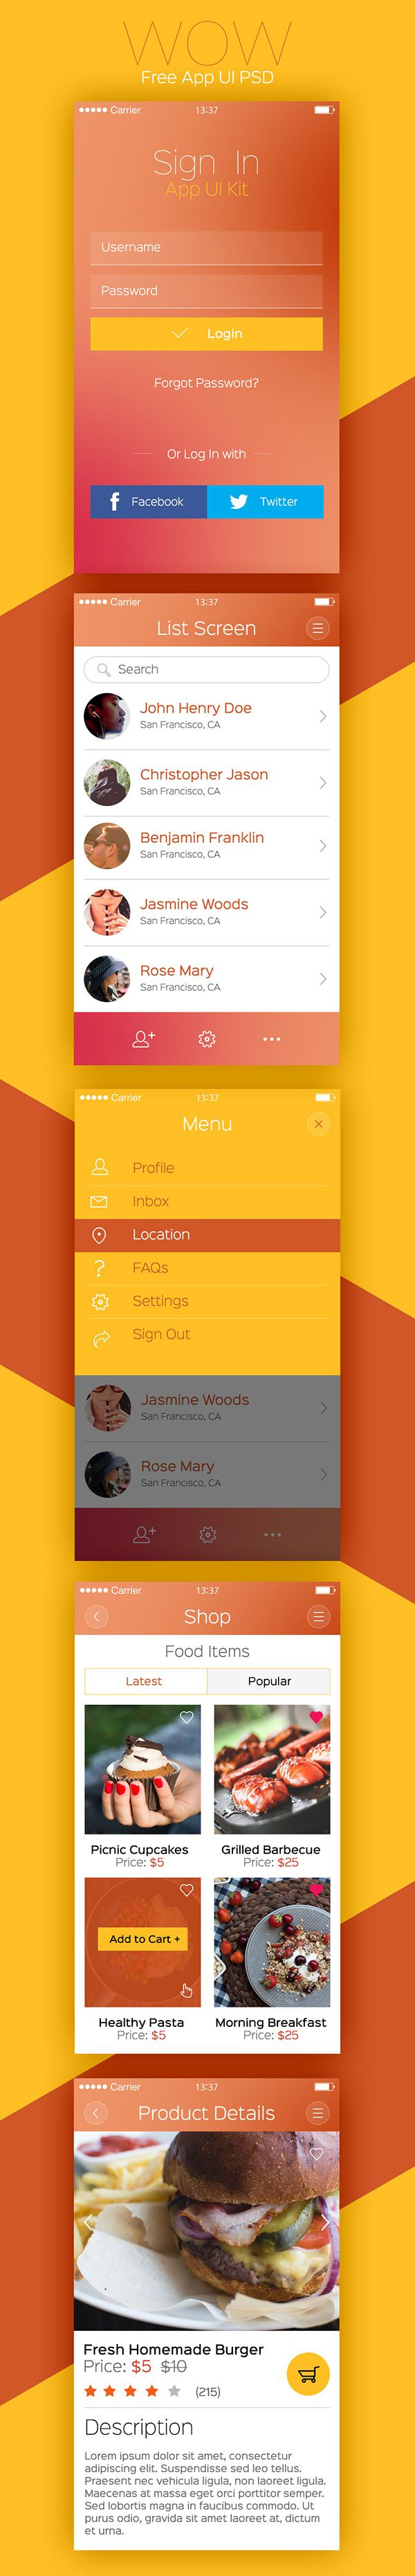 WOW is a sleek and modern mobile app UI concept created especially for iPhone apps. There are 5 screens in the download such as login, list, menu, shop products and product details.